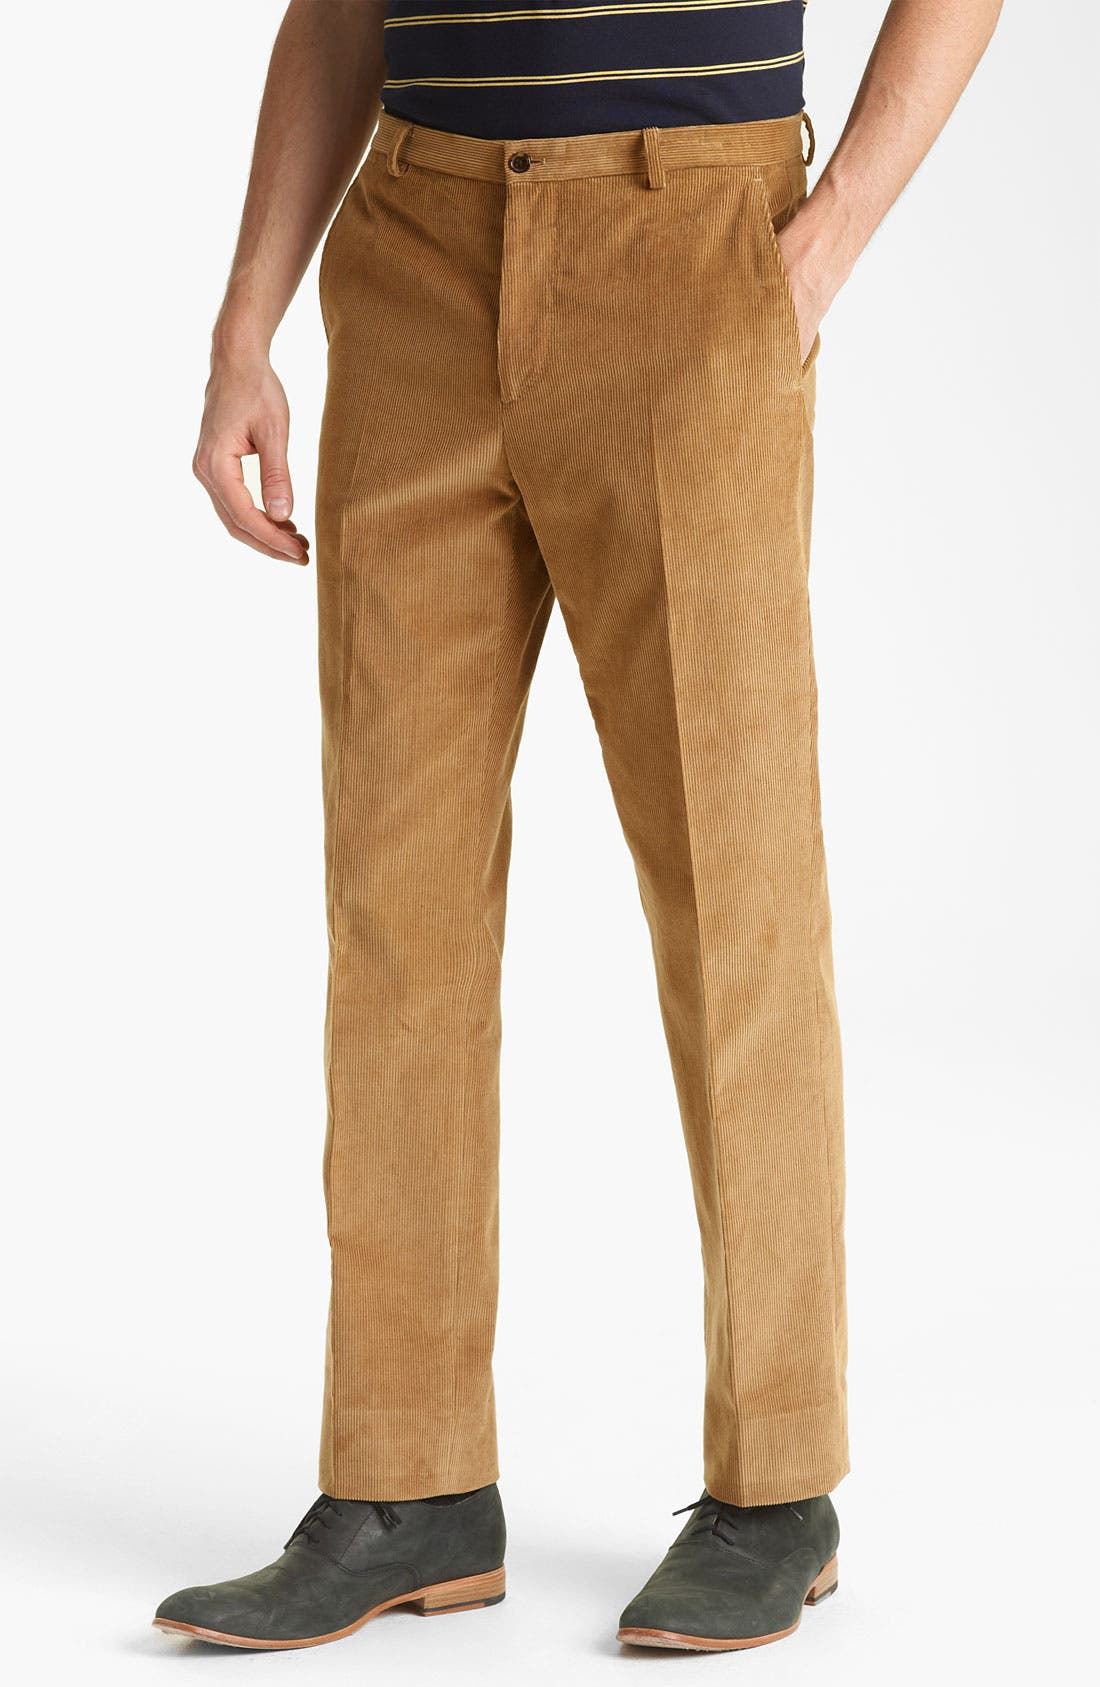 Alternate Image 1 Selected - Shipley & Halmos 'Grand' Corduroy Suit Trousers